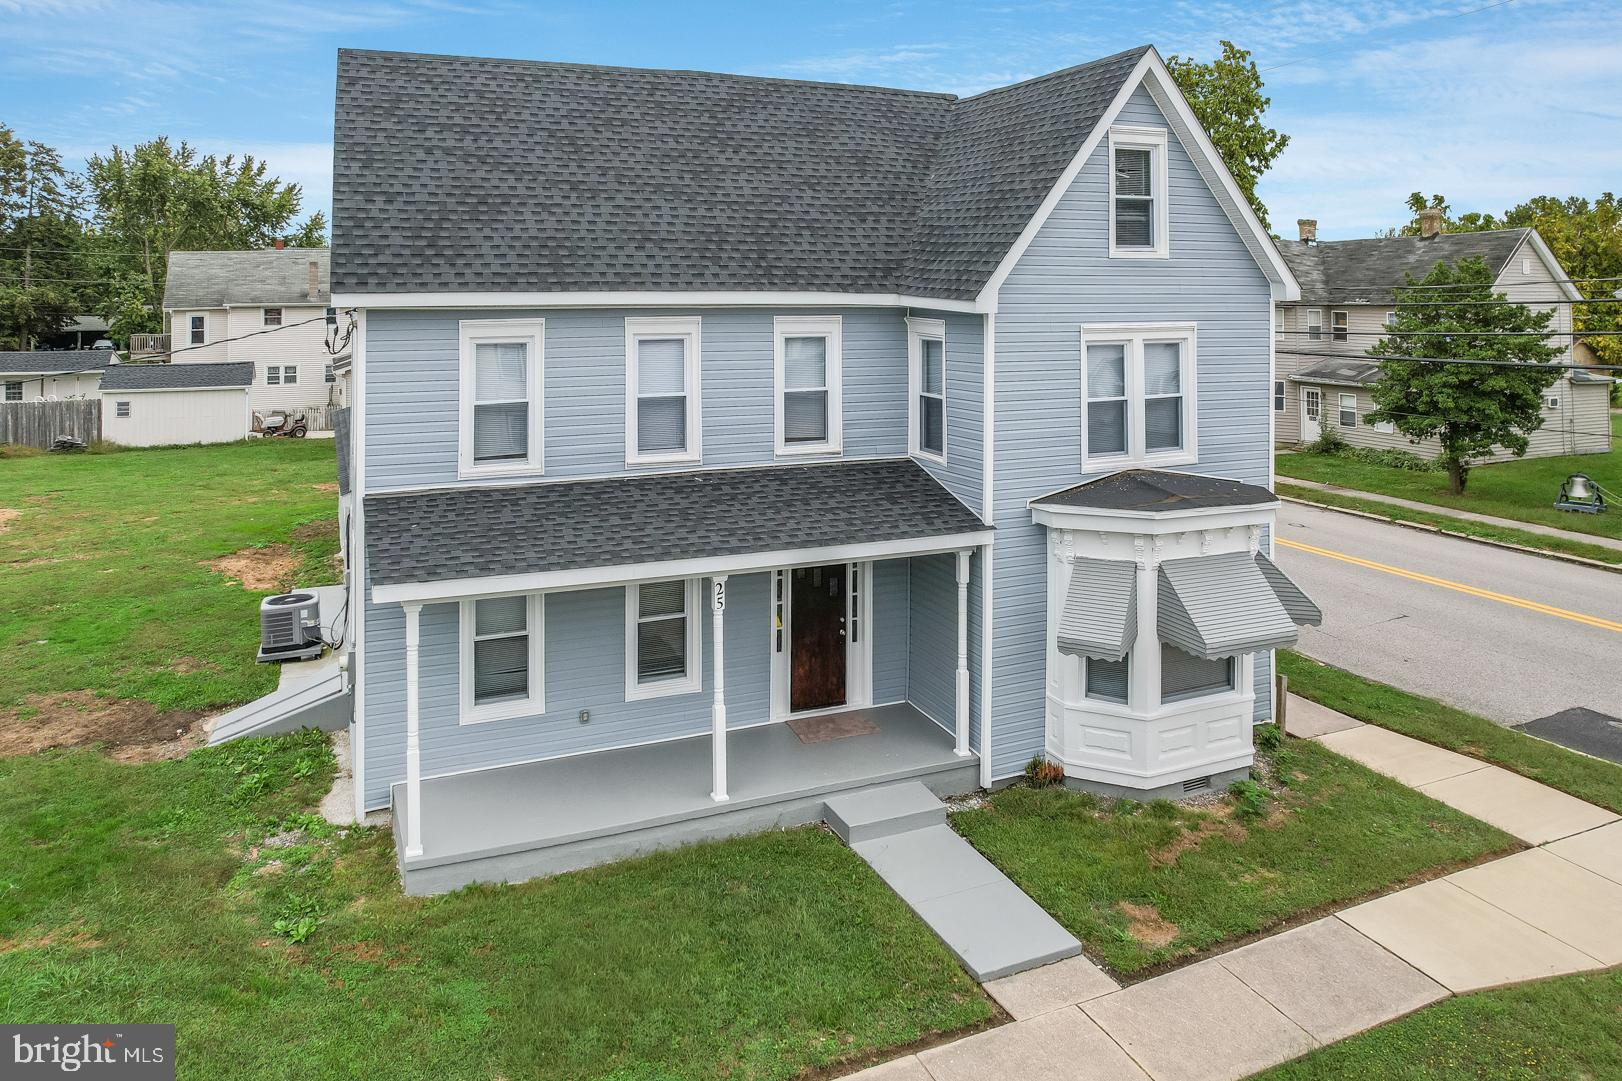 This beautiful home, beaming with curb appeal, is situated on a corner lot in the Town of Felton.  The home has been fully renovated, inside & out. The front exterior of the home features elegant canted bay windows with intricate detail, awnings and entirely new vinyl siding. The front porch adds to the character and charm of the home. The restored front door opens to the living room, surrounded with windows to welcome the sunshine. To the right of the entrance sits a large family room with bay windows, looking out from the front of the home.  Past the living room sits the spacious new kitchen with high end vinyl flooring, stainless appliances, granite and a center island for prep and dining.  Notice that the dining area can accommodate an oversized table.  Don't miss the gallery of windows, bringing in even more natural sunlight.  To the back of the kitchen you will find an entrance leading to a bonus room that can be used to the owners delight.. hobbies, gaming, fitness, office, etc.  Off the bonus room is a main floor full bathroom. In the kitchen you will see a door to your left that leads to an ample pantry/mud room. A separate utility room sits to the left.  The mud room has a side door with a pet door that leads to a new concrete pad and a lovely backyard.  The backyard features a newly installed driveway and a detached garage.  This lot in the Town of Felton is of a considerable size suitable for bbq's and entertaining. As you head up the stairs to the second level of the home you will find two large bedrooms, a 1/2 bath and a full bath. Note that one of the bedrooms on the second level is very large and has a walk in closet. The 3rd level has a fully finished fourth bedroom and a second multi-purpose space that can be used as a play area, a reading space, office, etc.  This is a large home that you must see to appreciate fully.  The transformation of this home includes the following NEW features: drywall, hvac (2 zones), plumbing, electric, carpet, vinyl fl